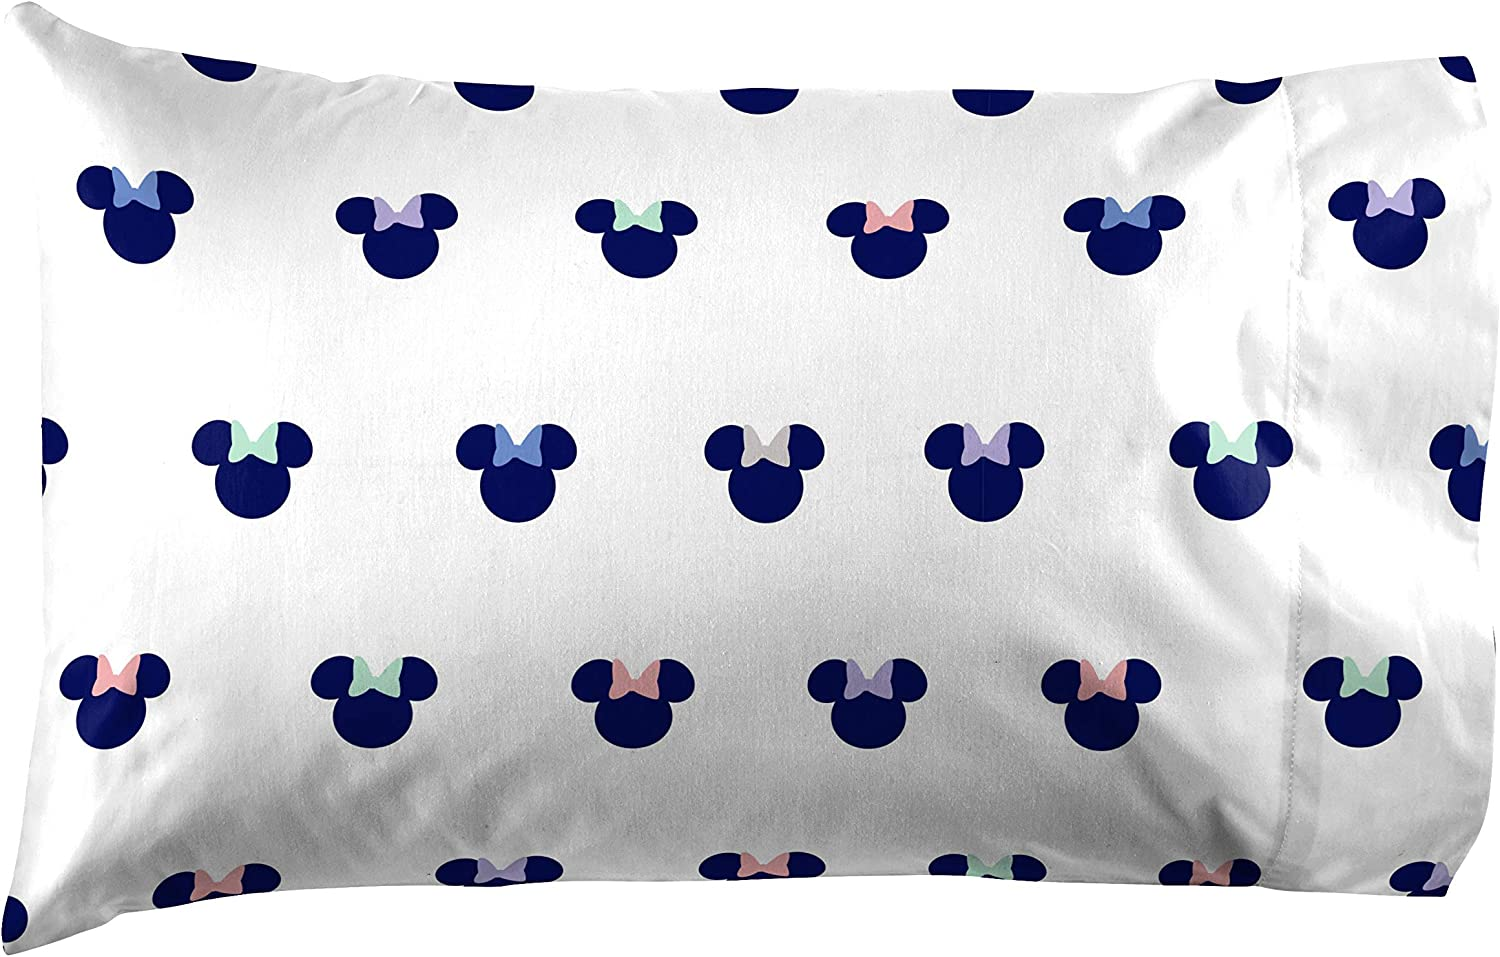 Saturday Park Minnie Mouse Pillowcase - 100% Cotton Pillow Cover - Ultra Soft & Durable - Disney Official - Oeko-TEX Certified : Home & Kitchen